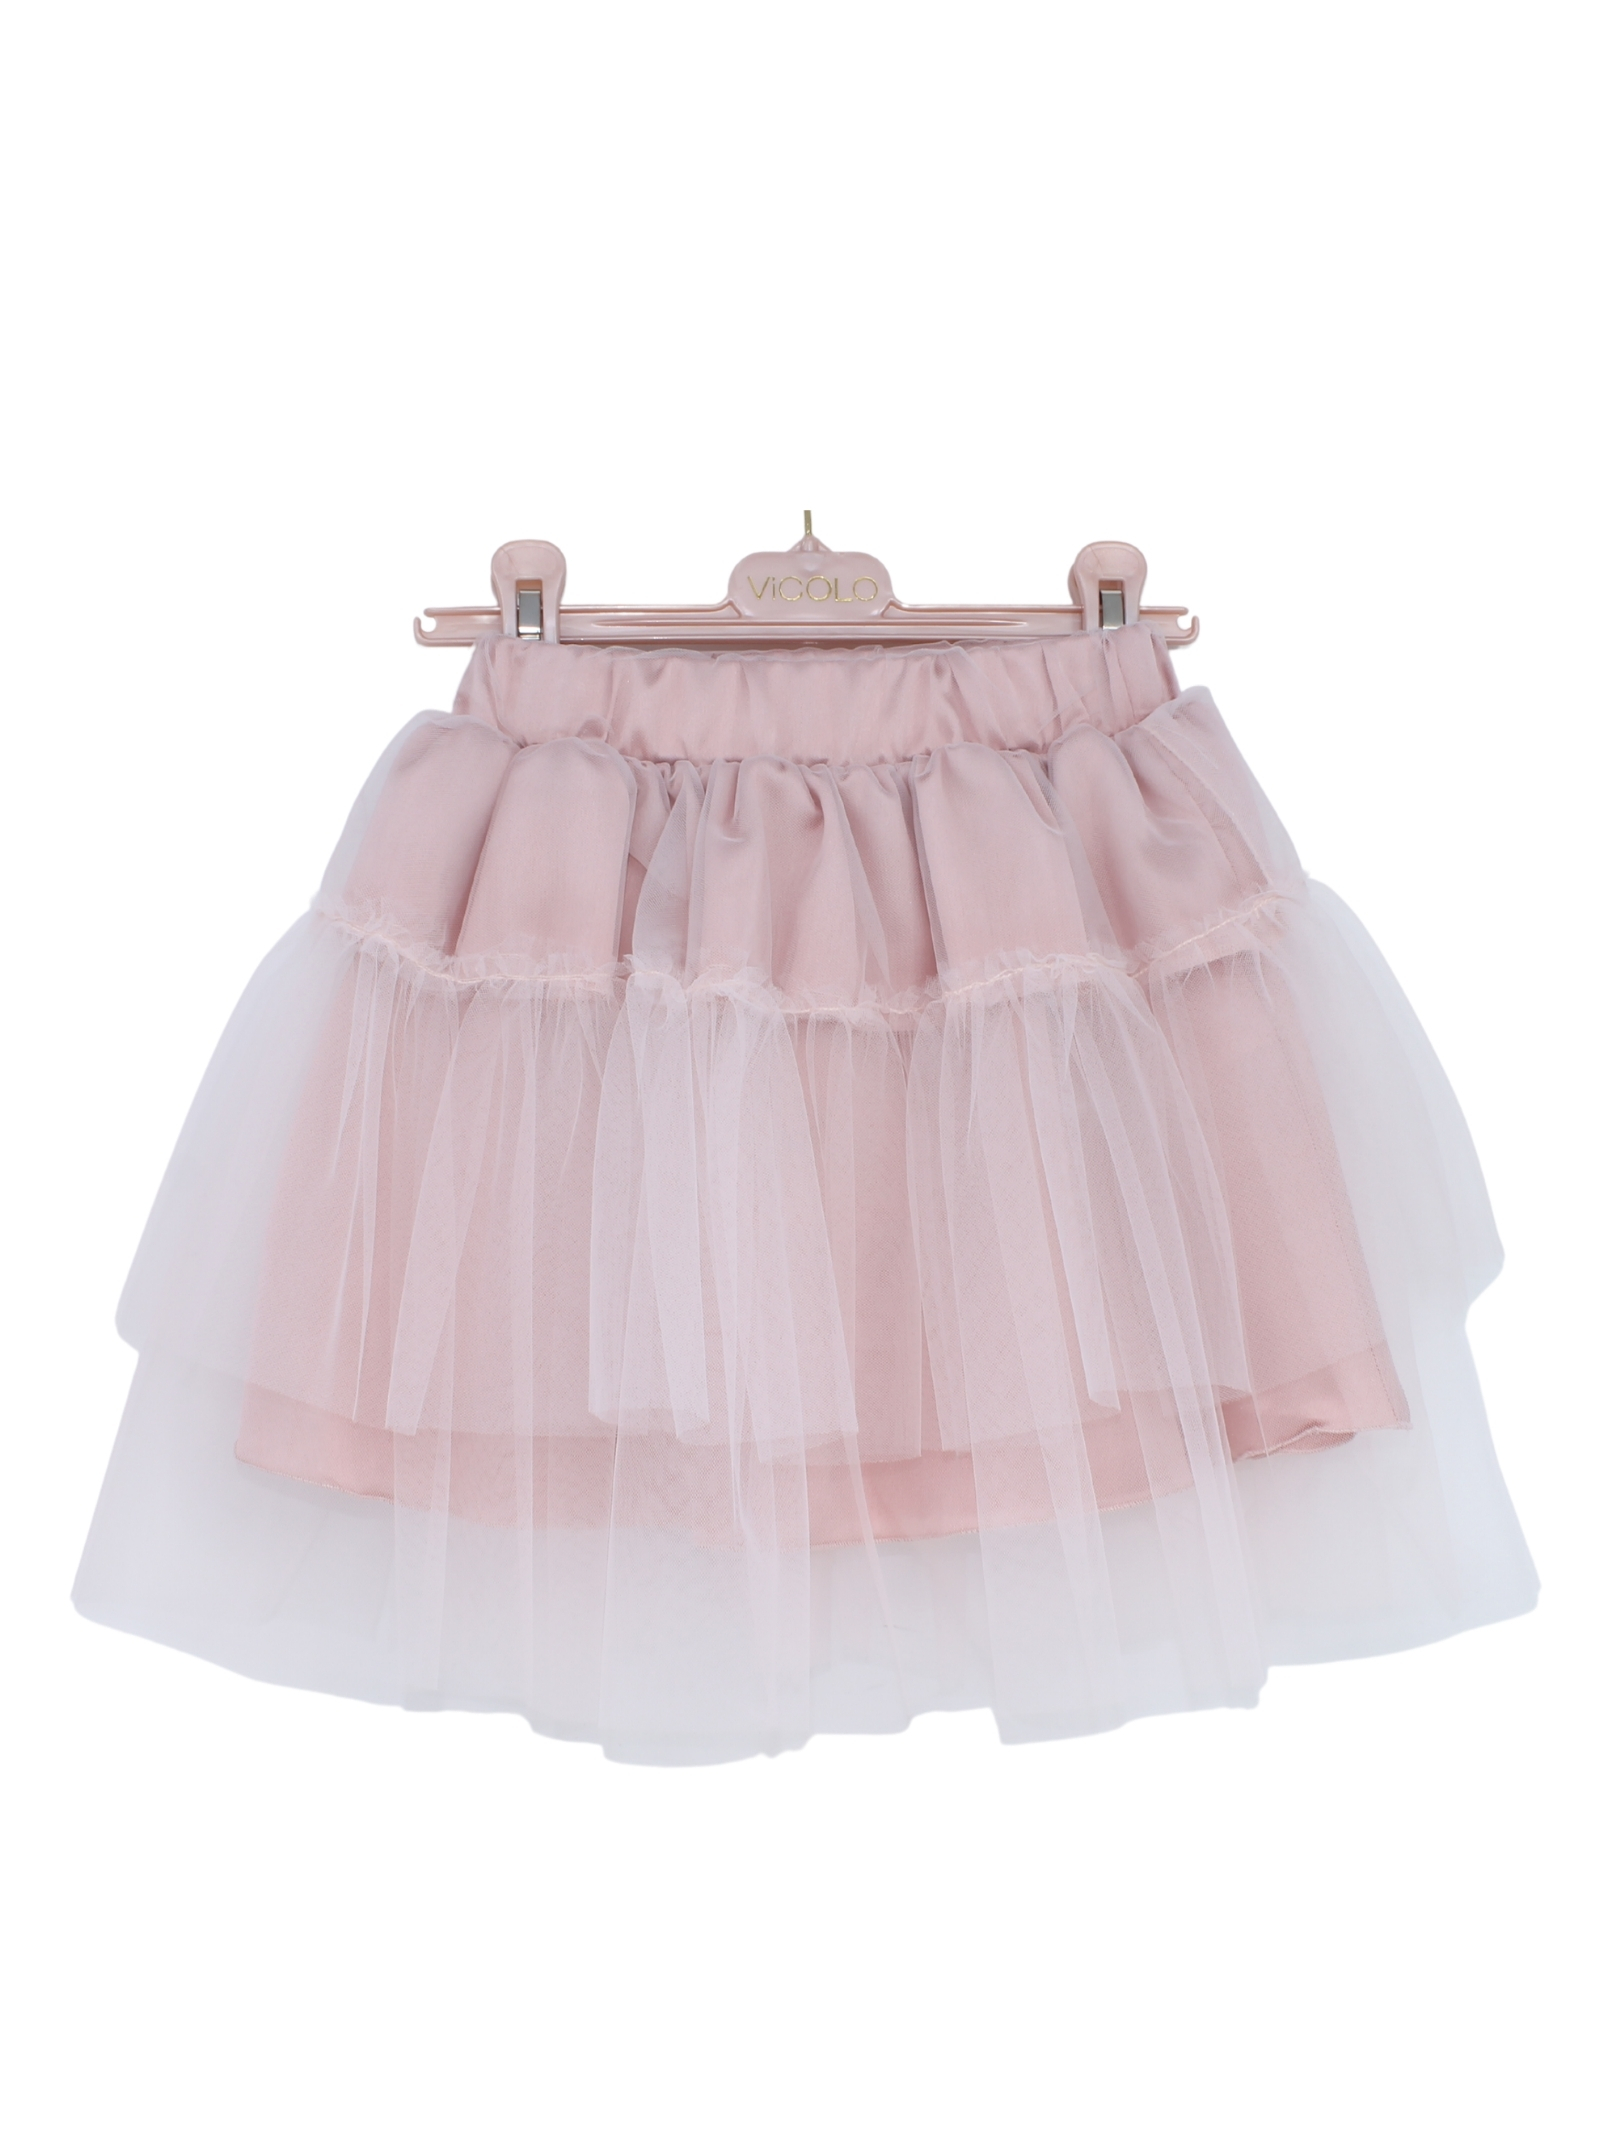 Gonna Bambina Tulle VICOLO KIDS | Gonne | 3146G0442CIPRIA